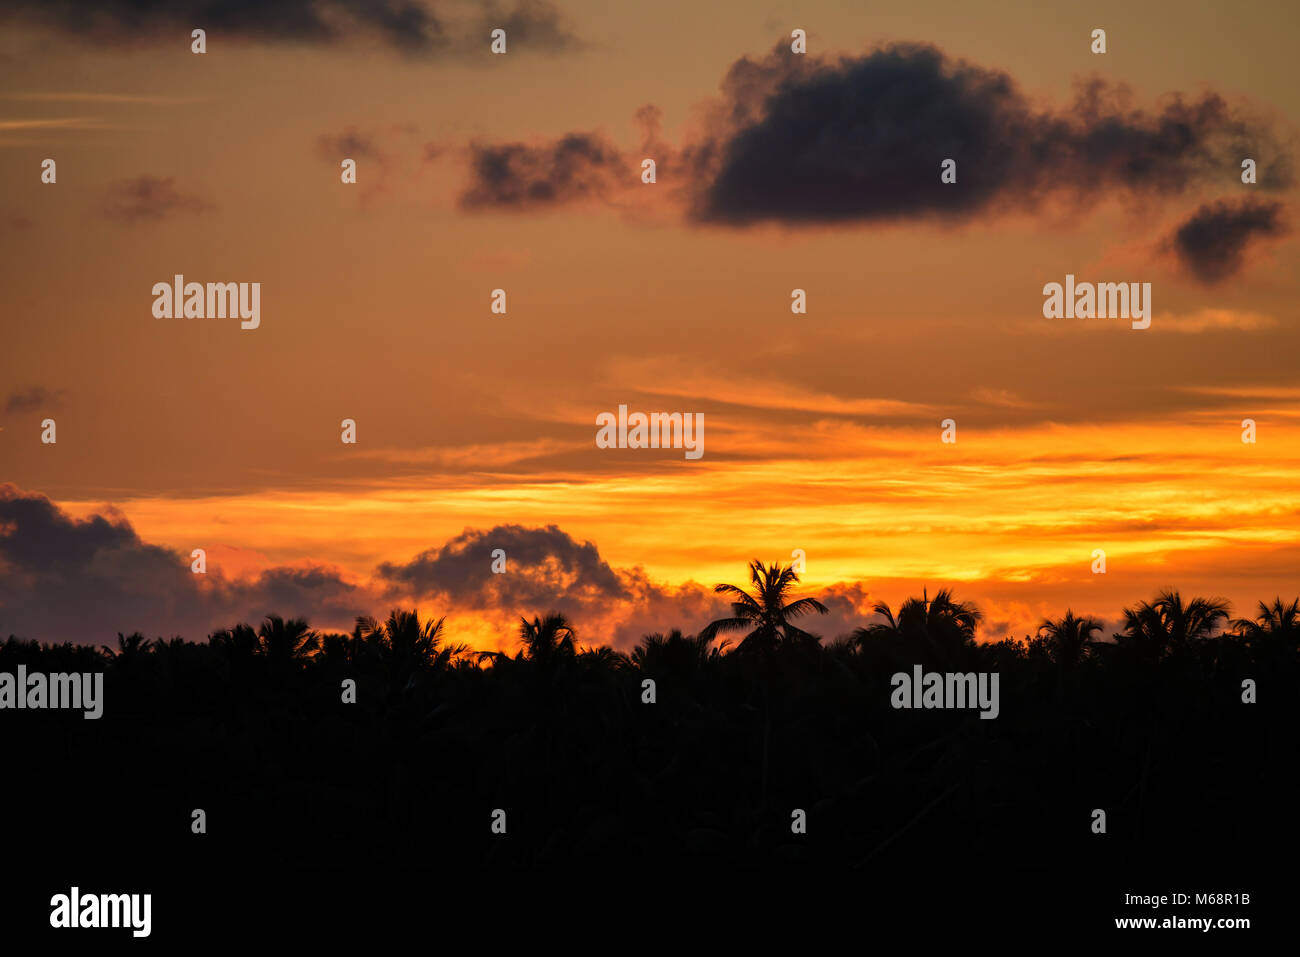 Scenic tropical sunset - Stock Image